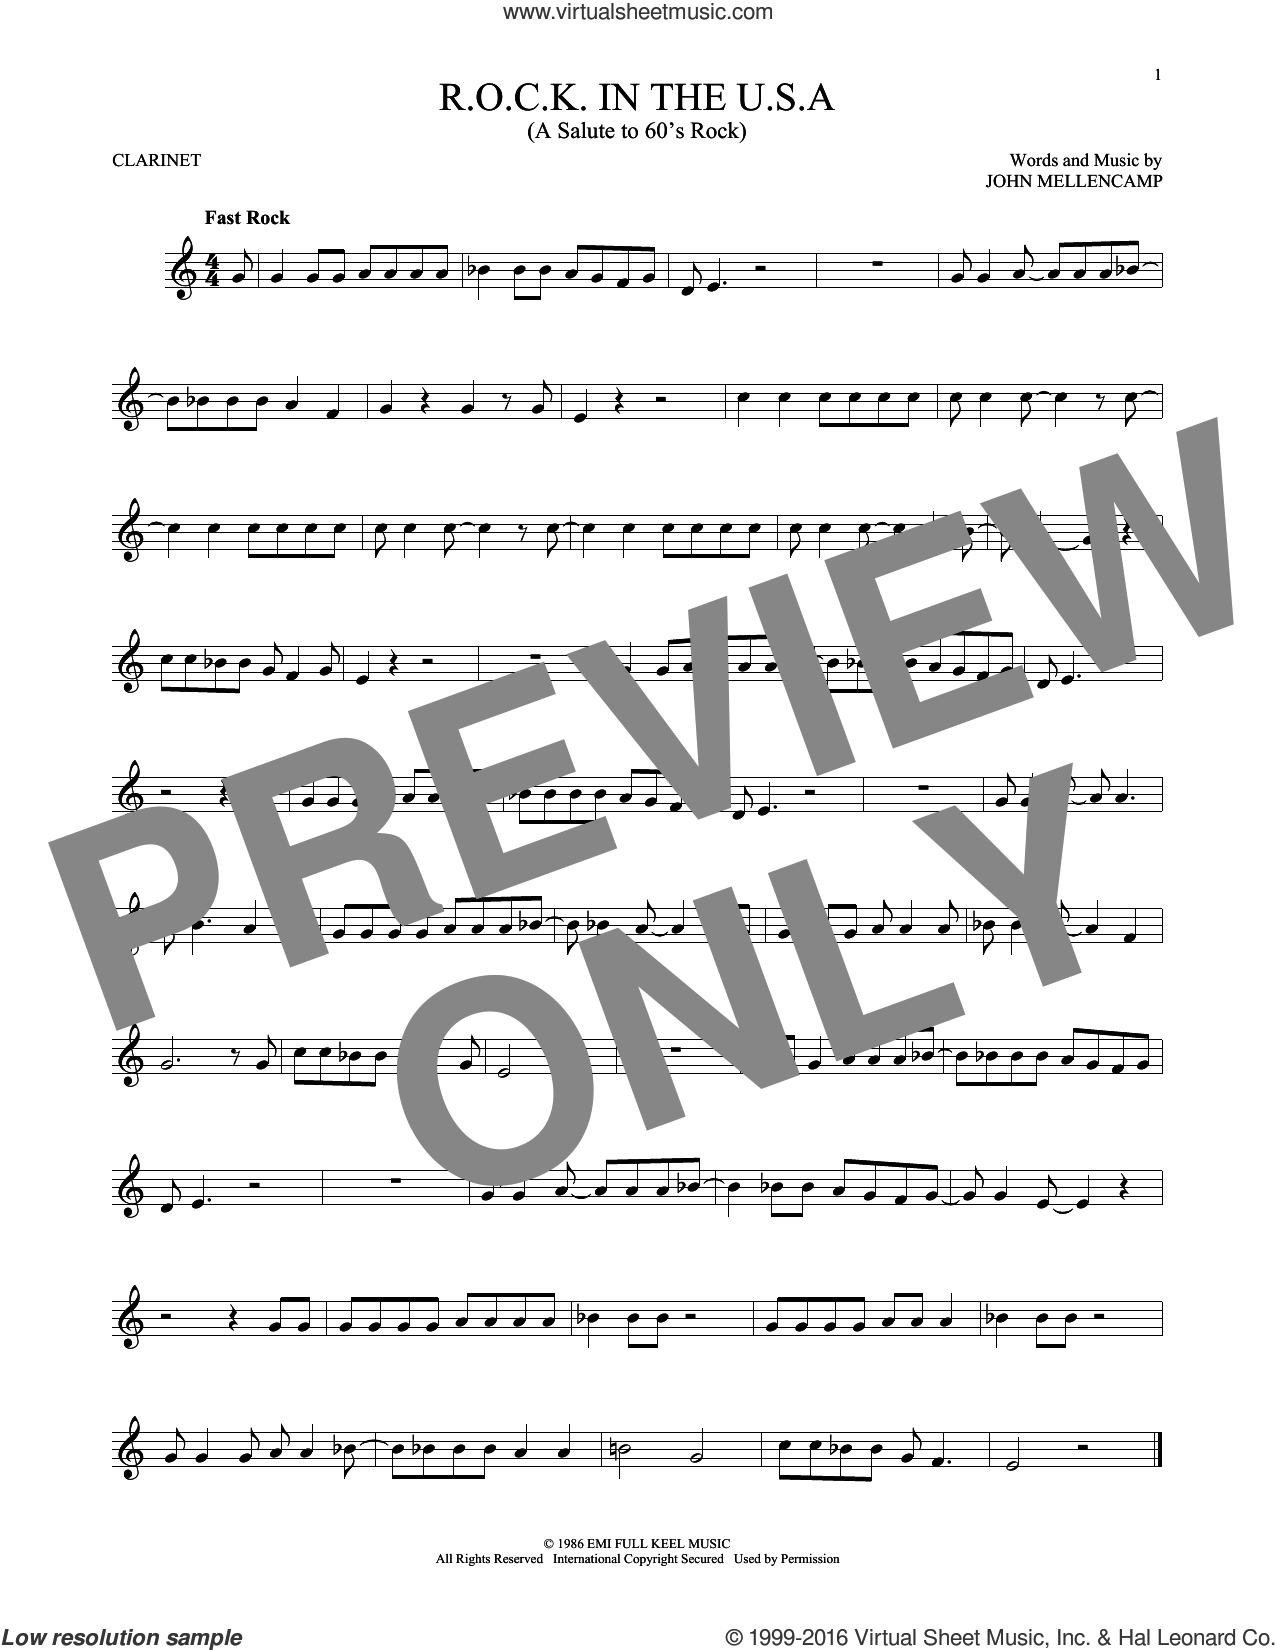 R.O.C.K. In The U.S.A. (A Salute To 60's Rock) sheet music for clarinet solo by John Mellencamp. Score Image Preview.